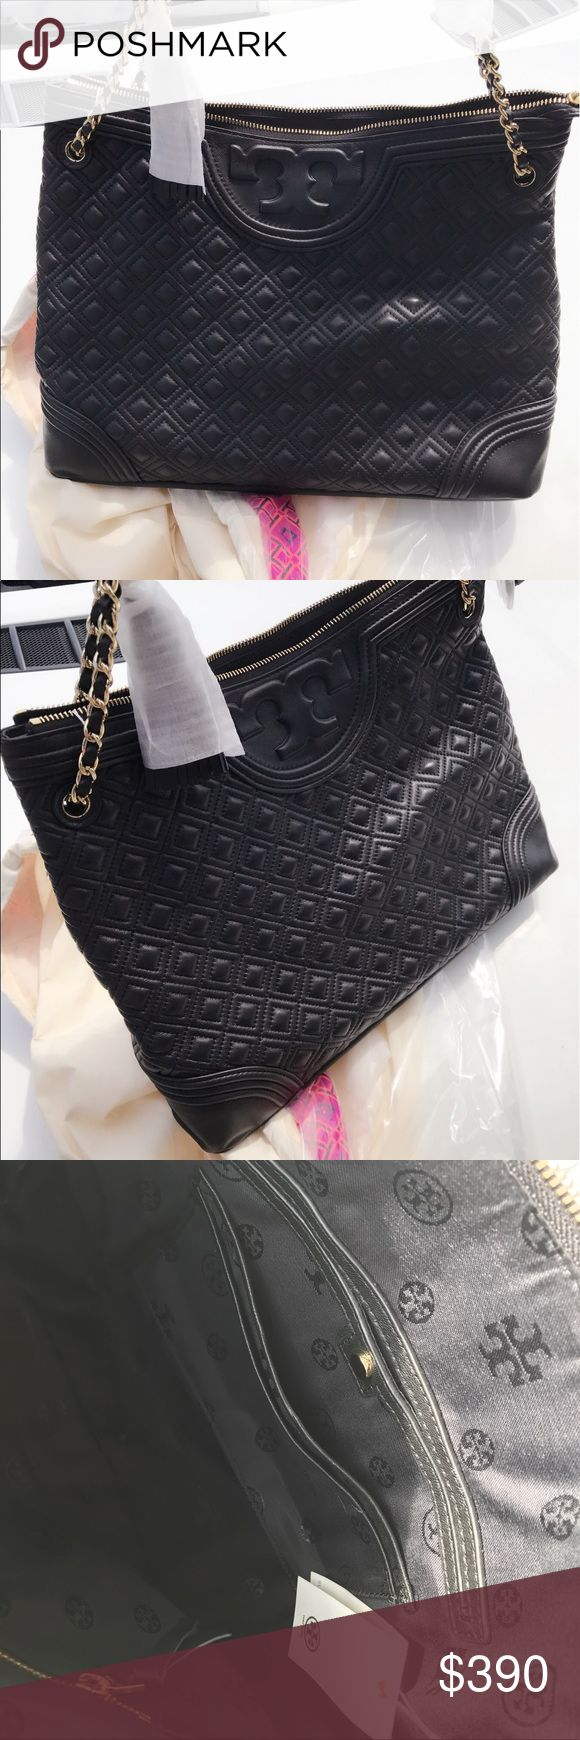 """NWT Tory burch Fleming Tote💯 Authentic Black tote with Tag. Holds a 13"""" laptop, a small umbrella, A4 paper, a continental wallet and an iPhone 6 Plus Leather Zipper closure Leather-and-chain strap with 9.96"""" (25 cm) drop 1 interior zipper pocket, 2 open pockets Height: 12.35"""" (31 cm) Length: 15.34"""" (38.5 cm) Depth: 5.58"""" (14 cm) Tory Burch Bags Totes"""